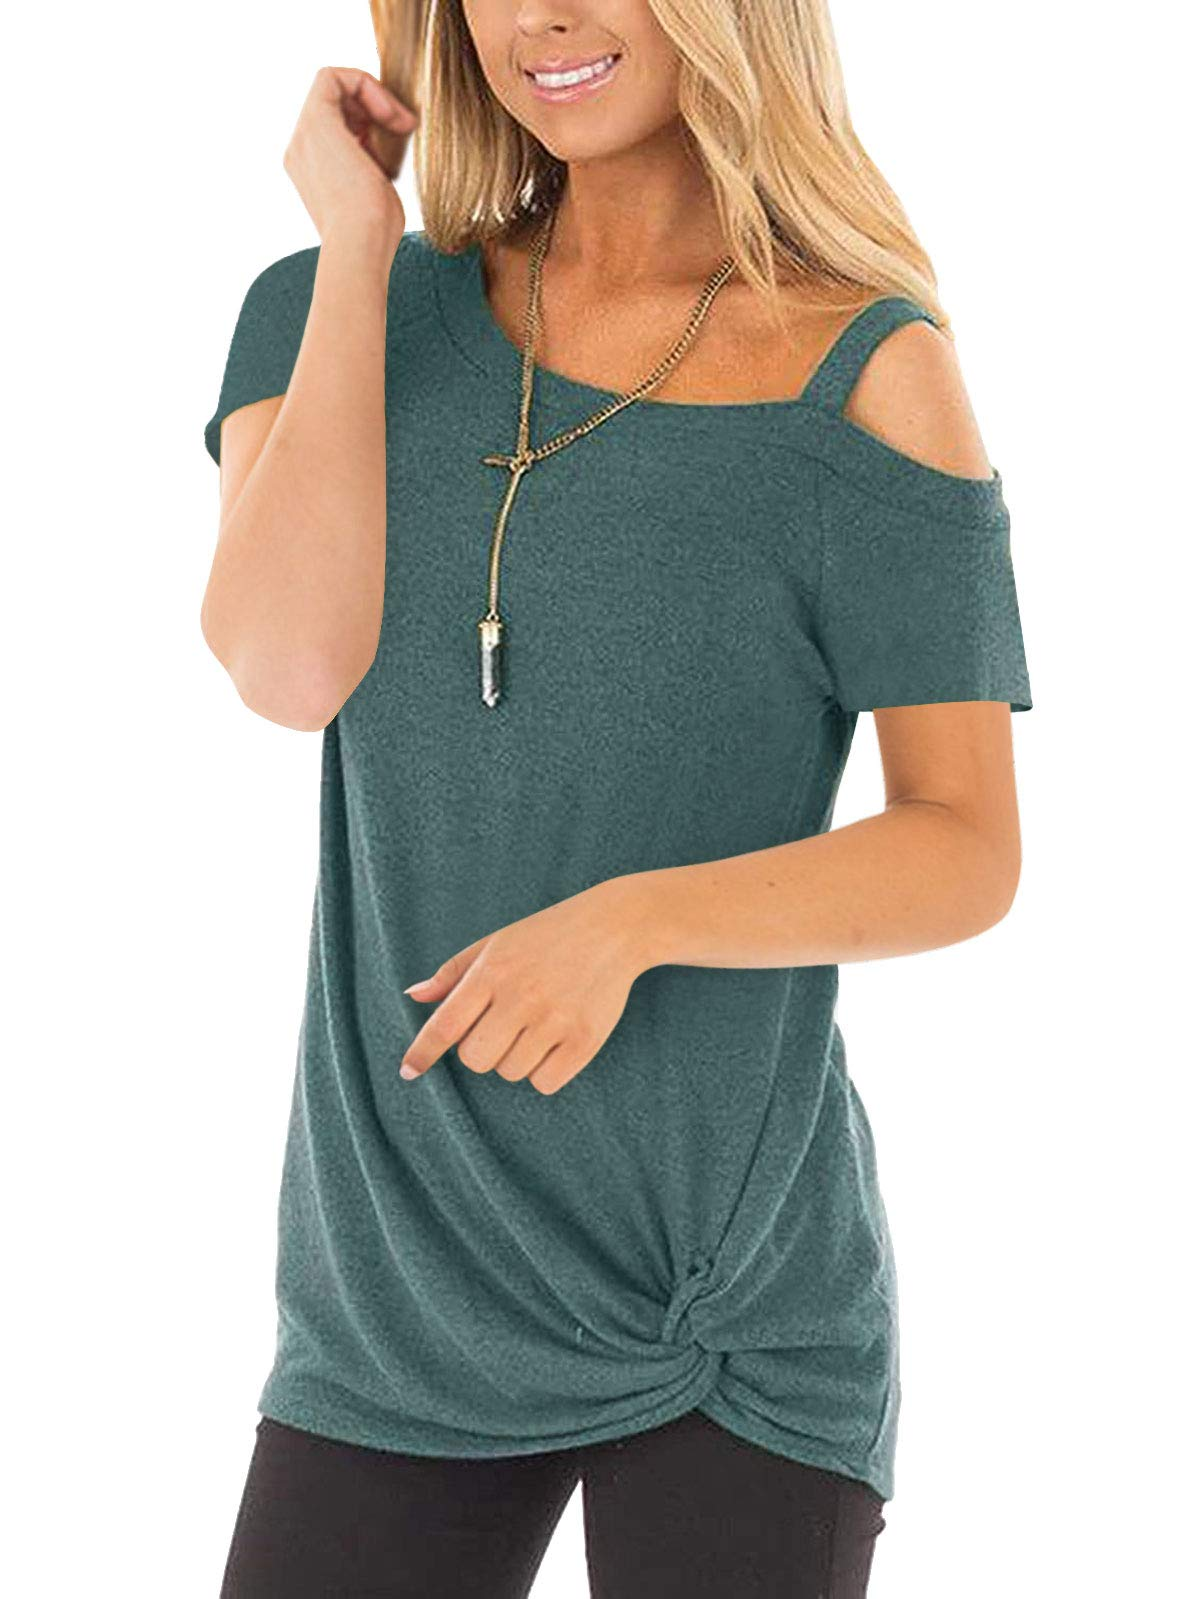 IMIDO Womens Cold Shoulder Tops Front Knot Side Twist Shirts One Shoulder Blouse Short Sleeve Tunic (M, B-Green)